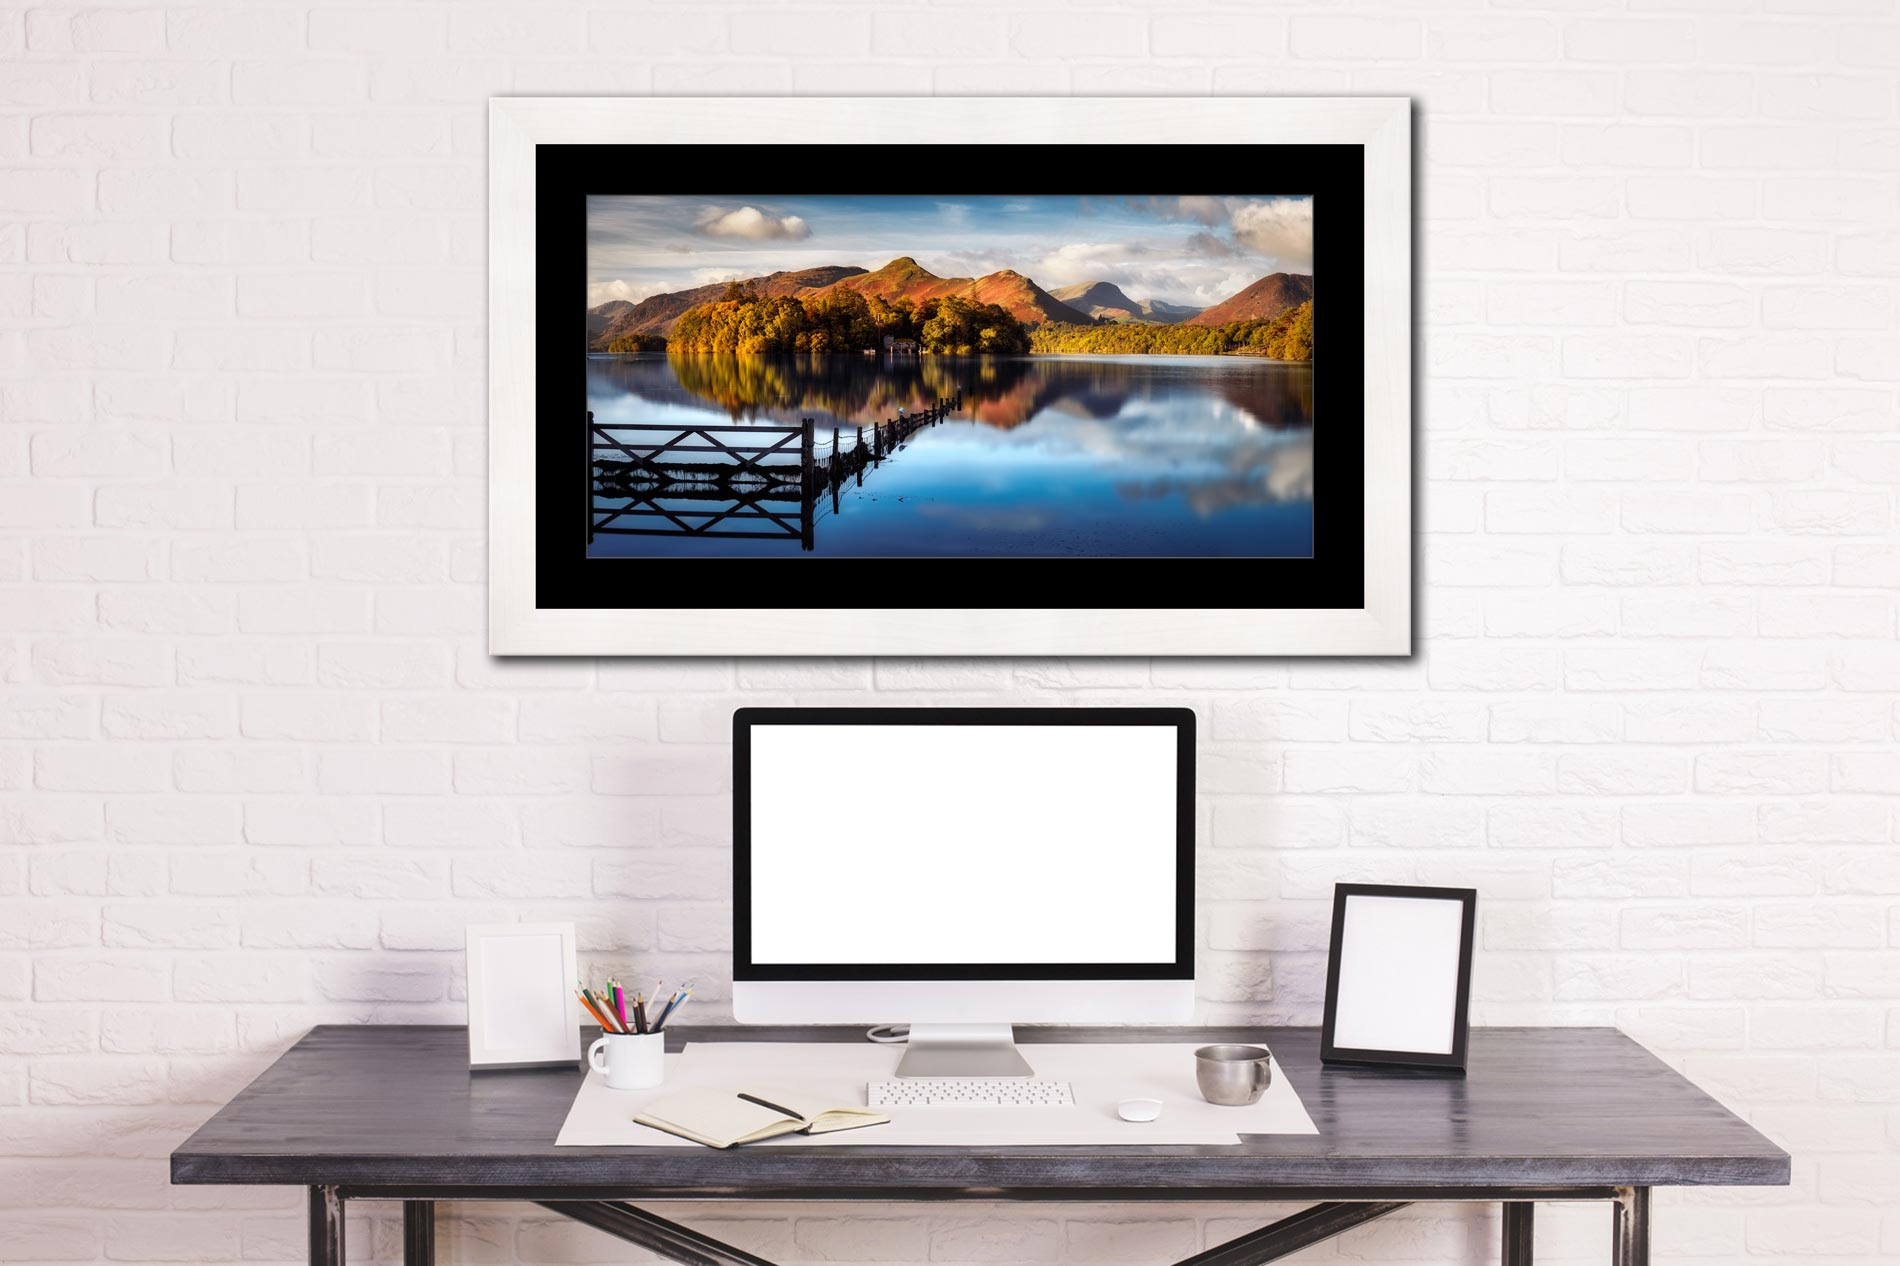 Cat Bells Red Dawn - Framed Print with Mount on Wall